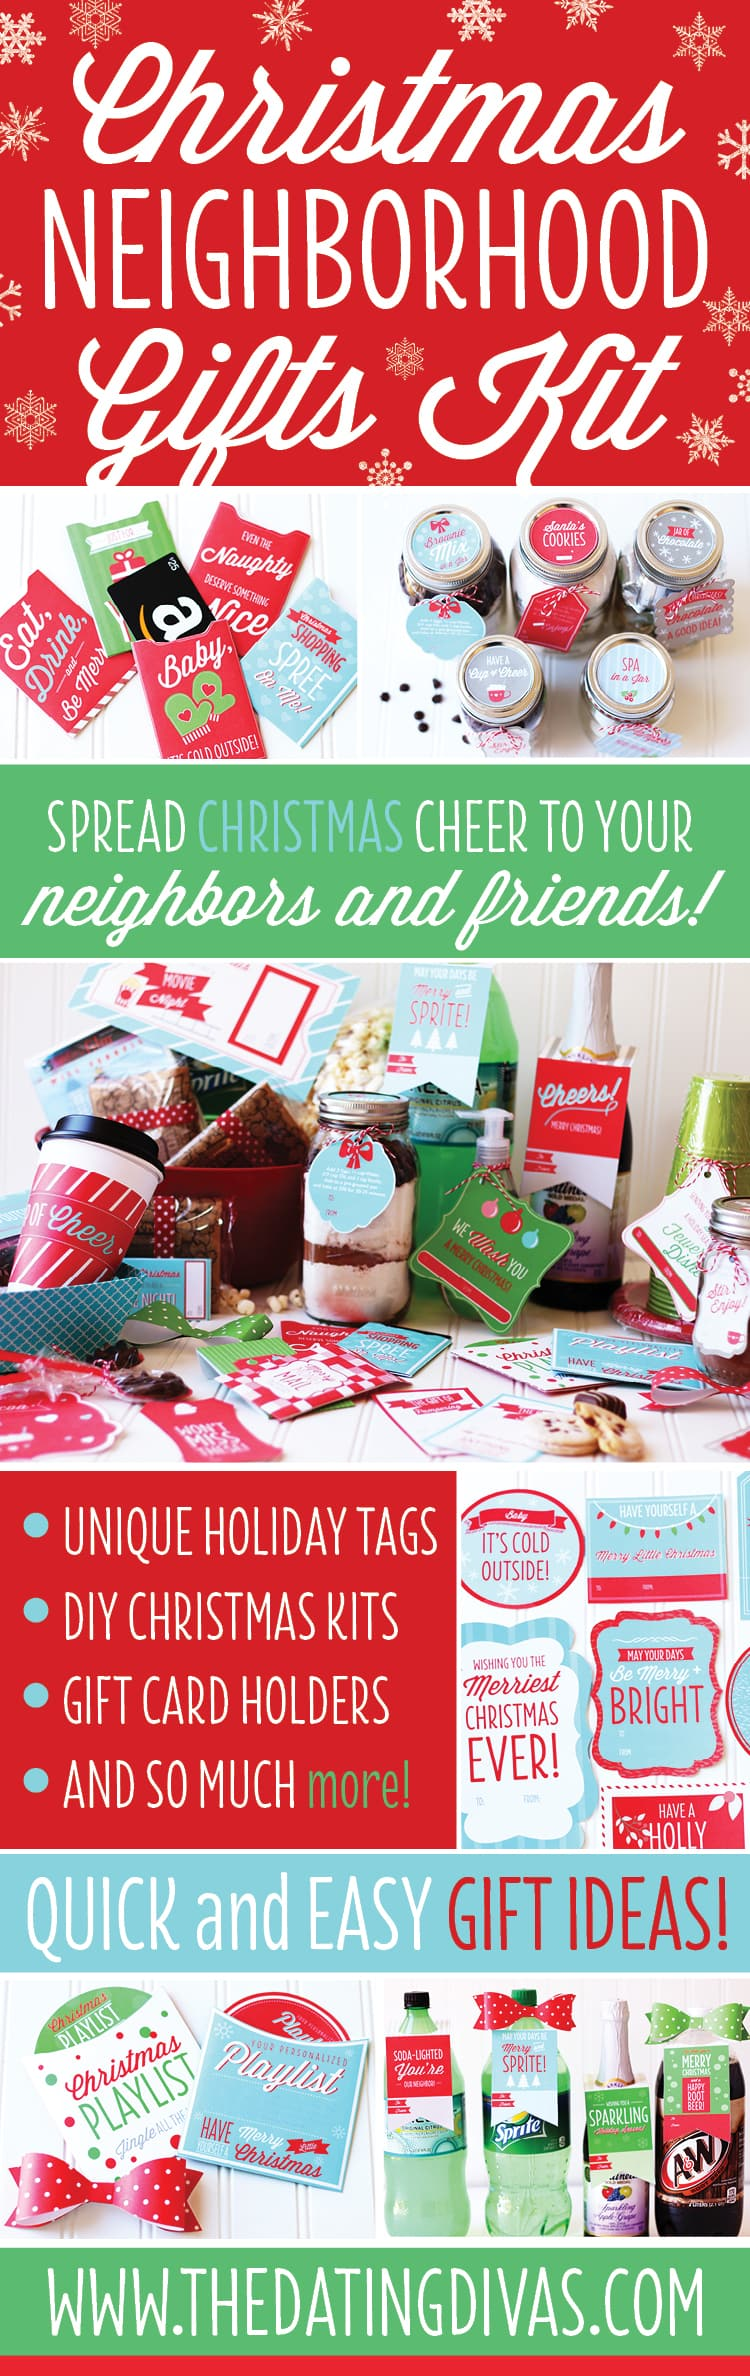 Christmas Neighbor Gifts Ideas